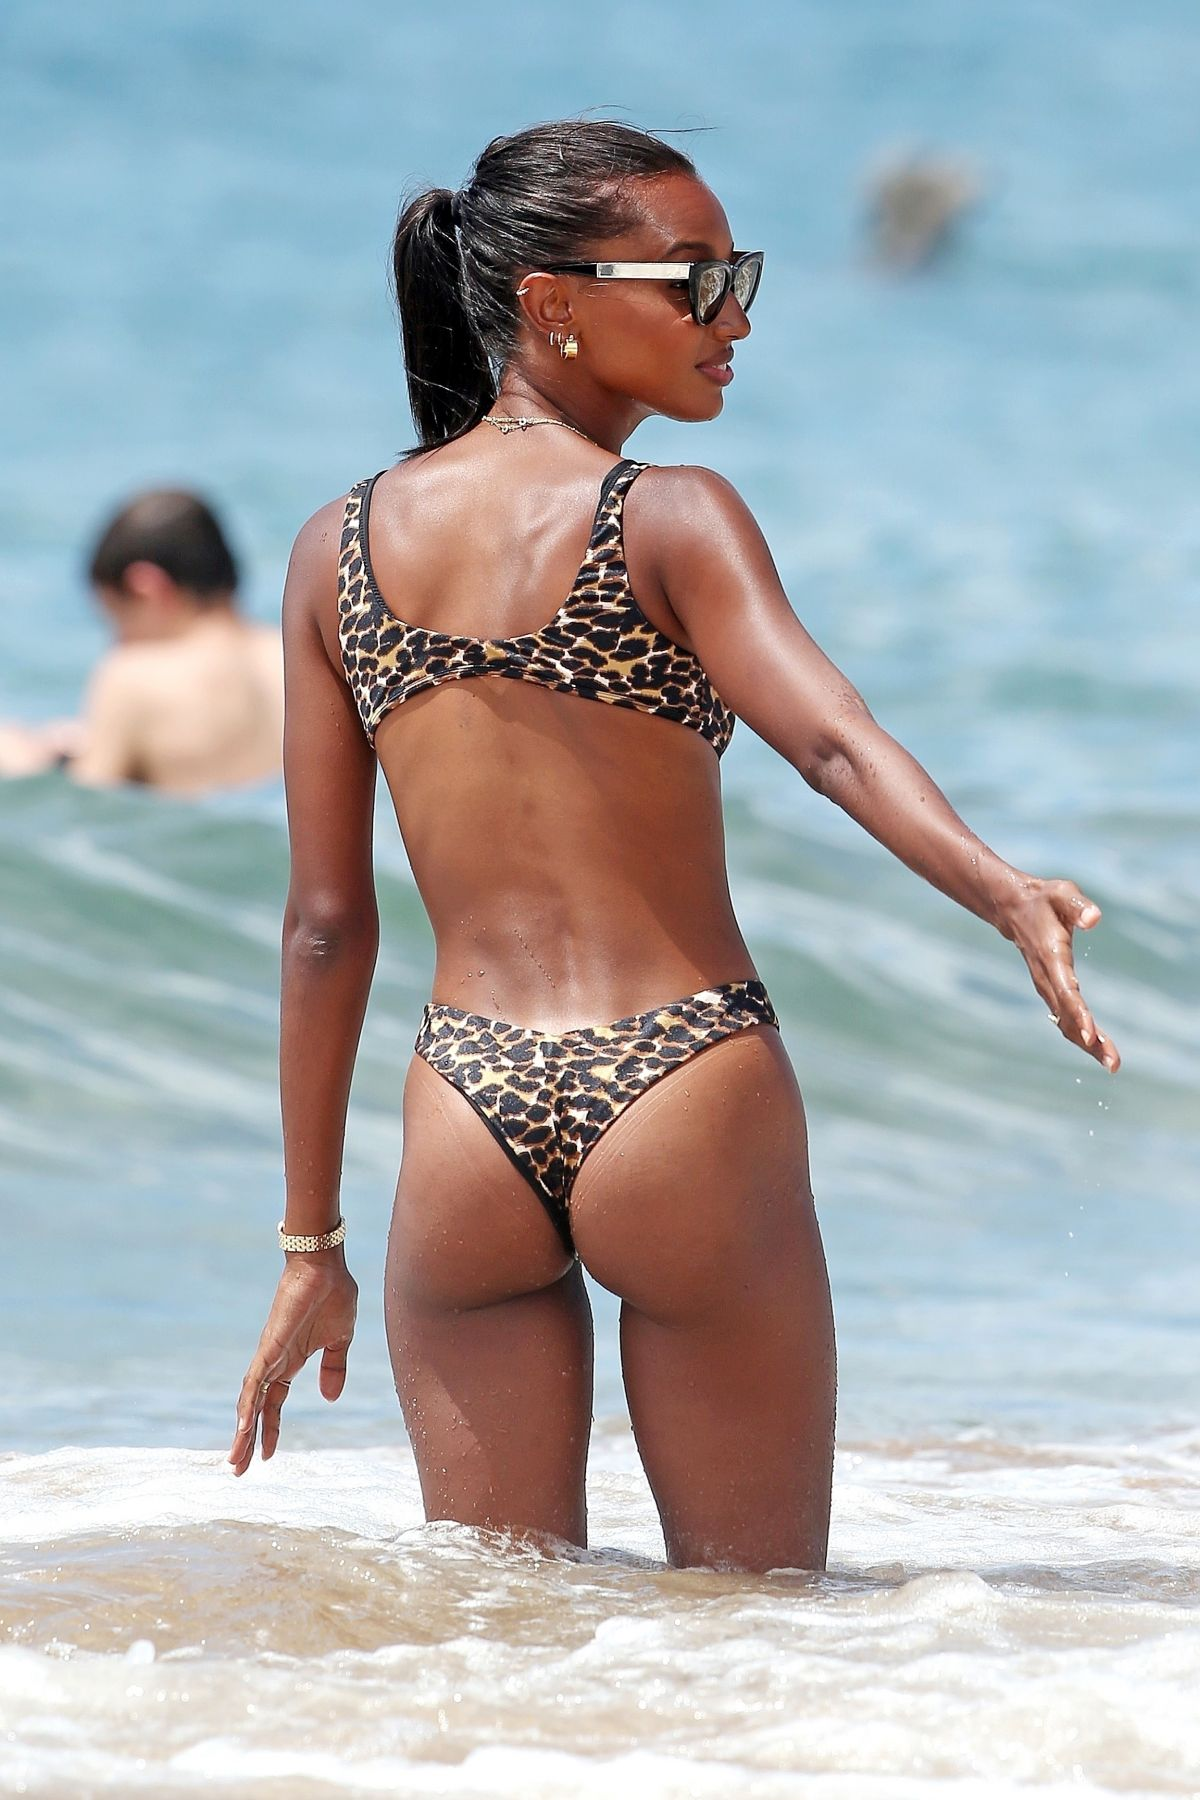 Bikini Jasmine Tookes nudes (93 foto and video), Topless, Is a cute, Twitter, see through 2006